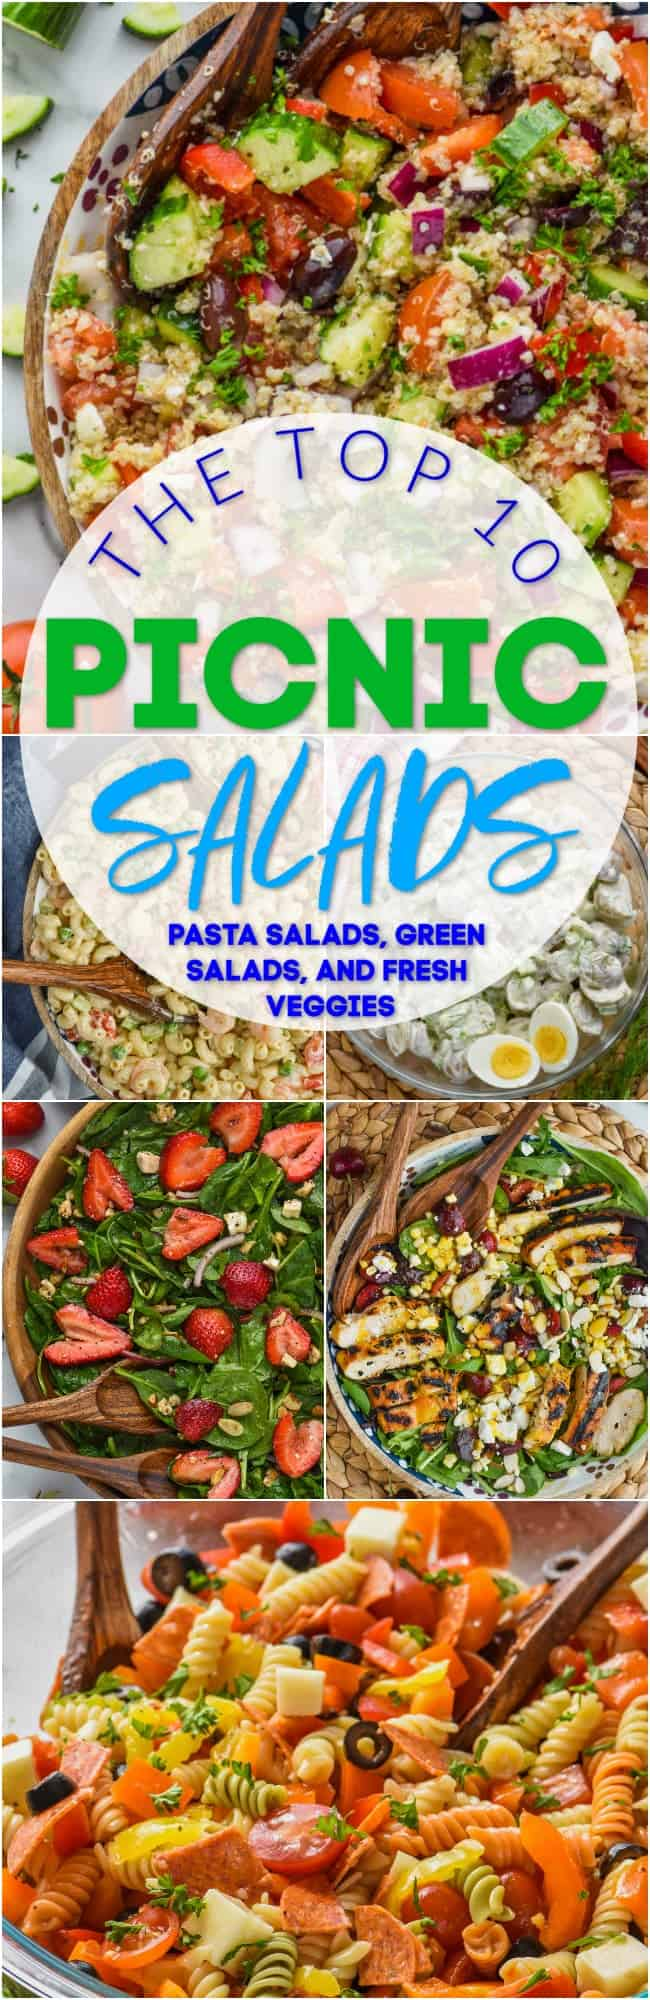 collage of photos of picnic salads